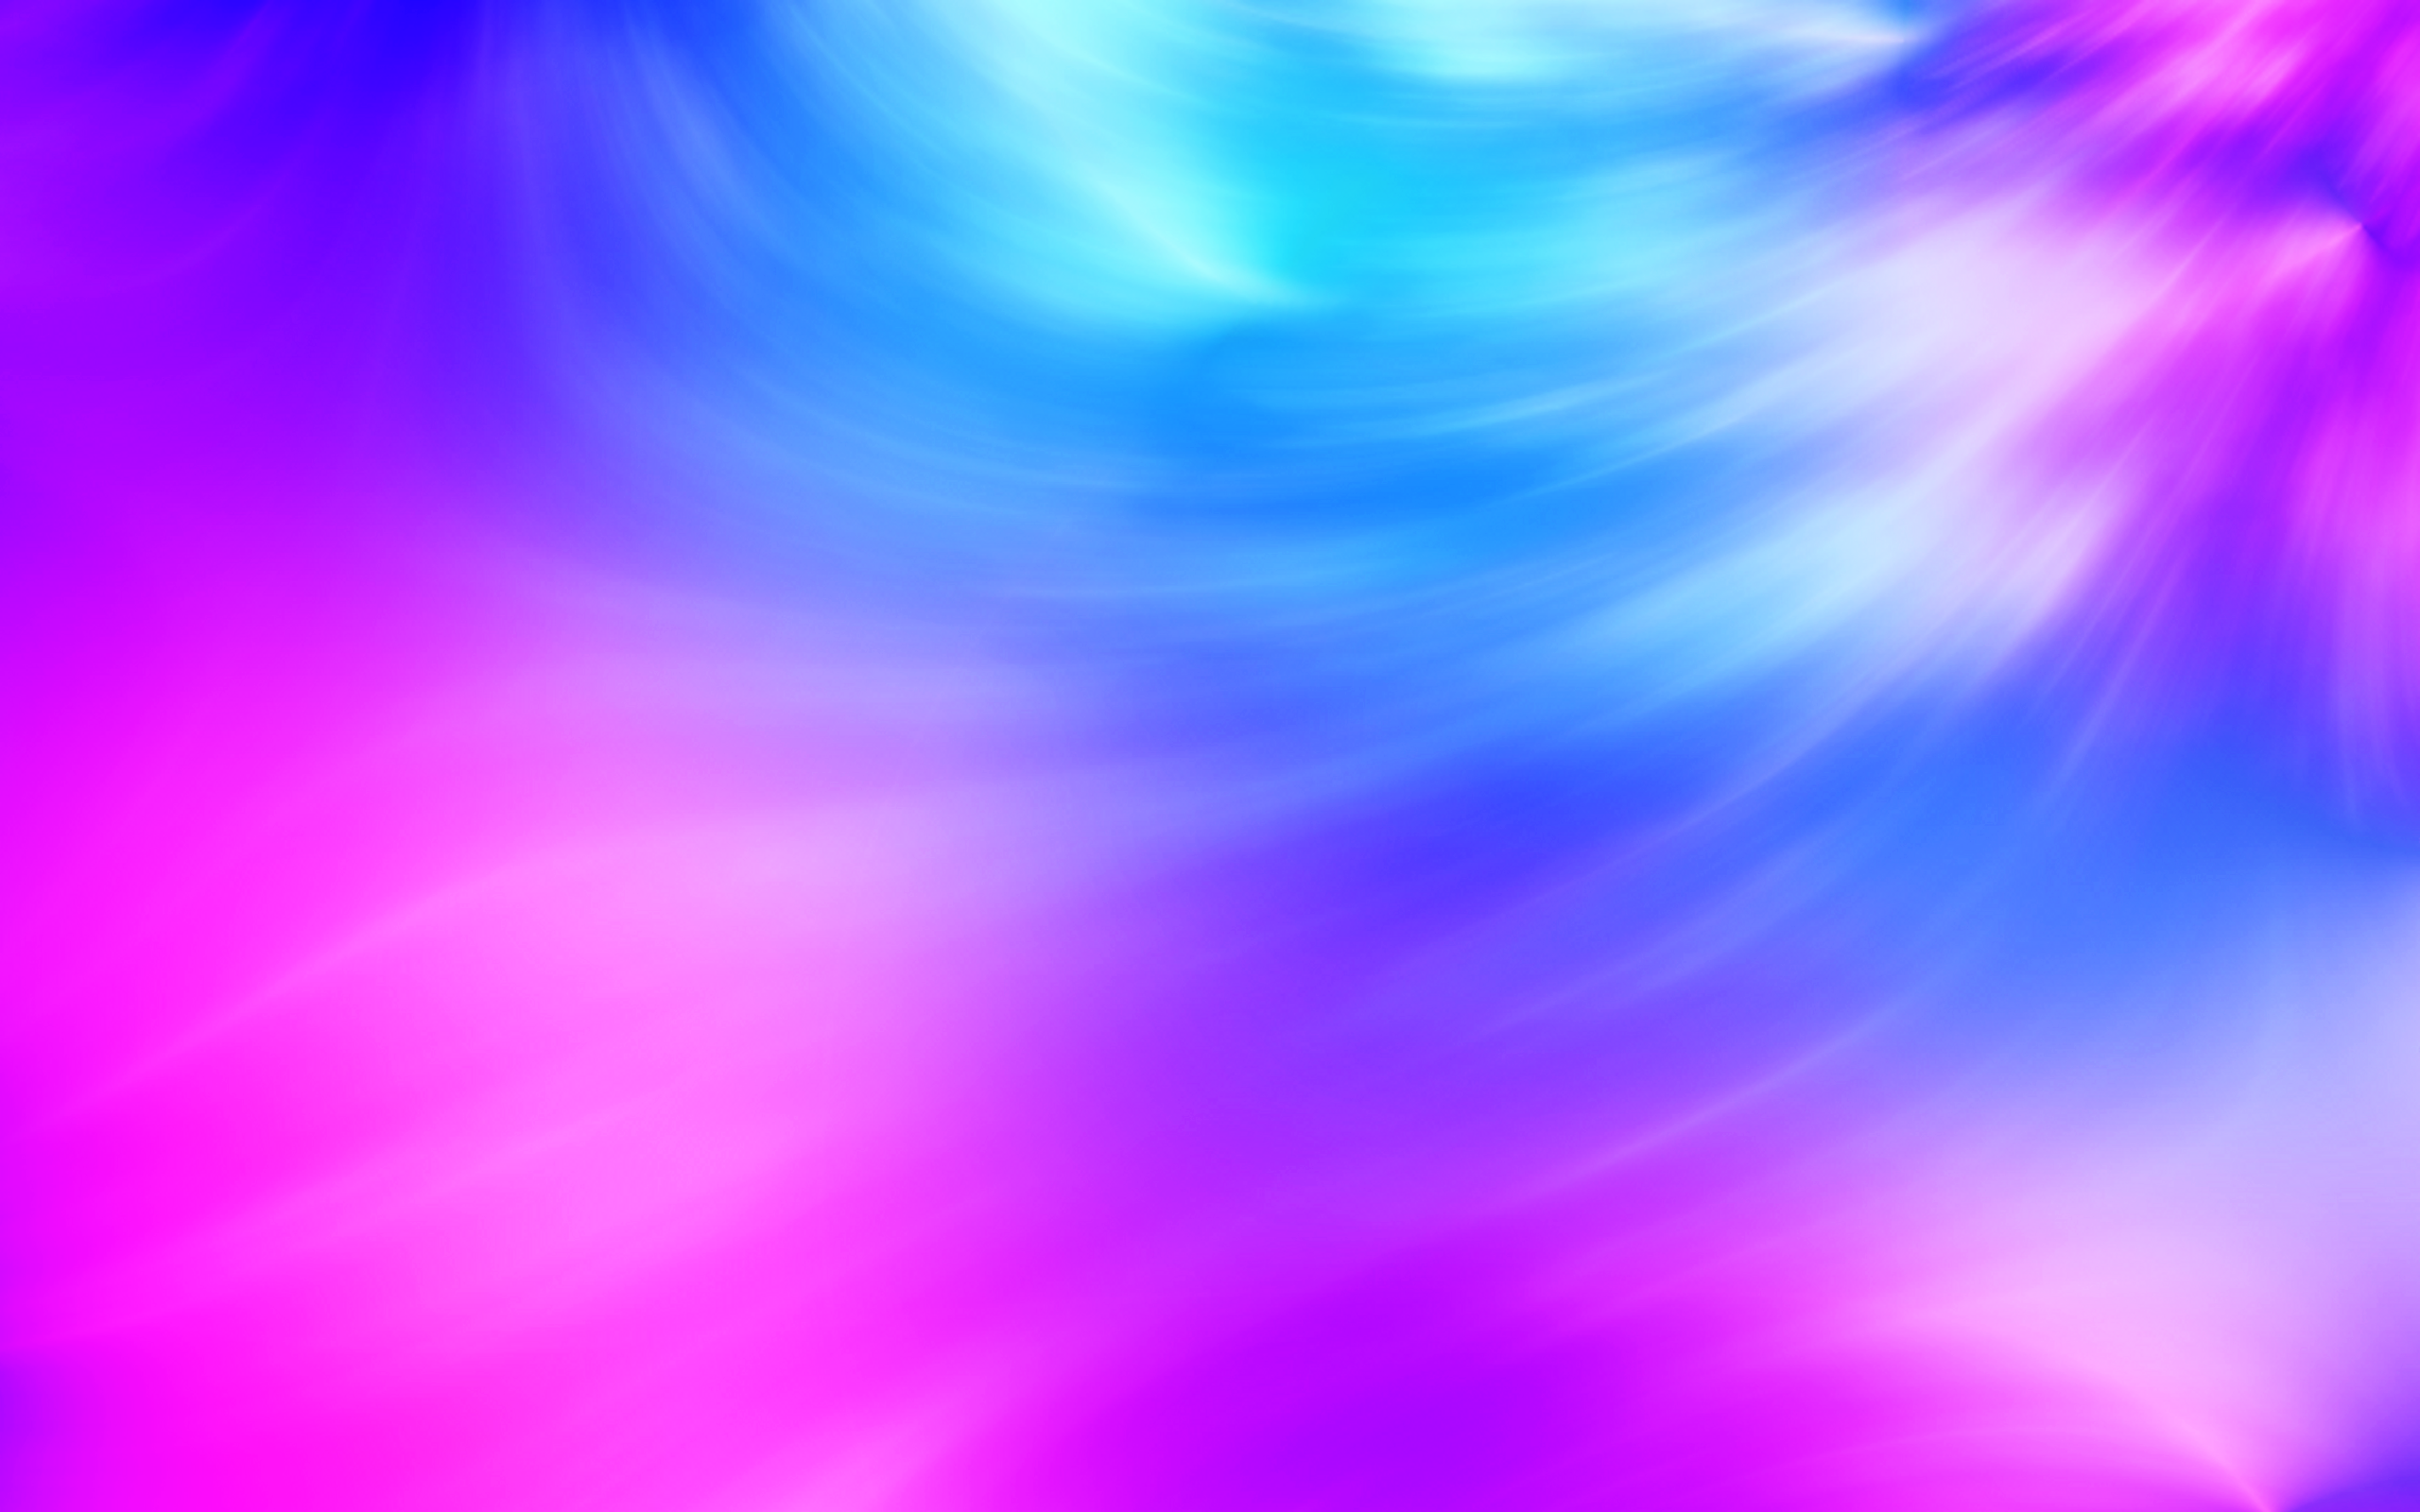 Blue and Pink Wallpaper - WallpaperSafari